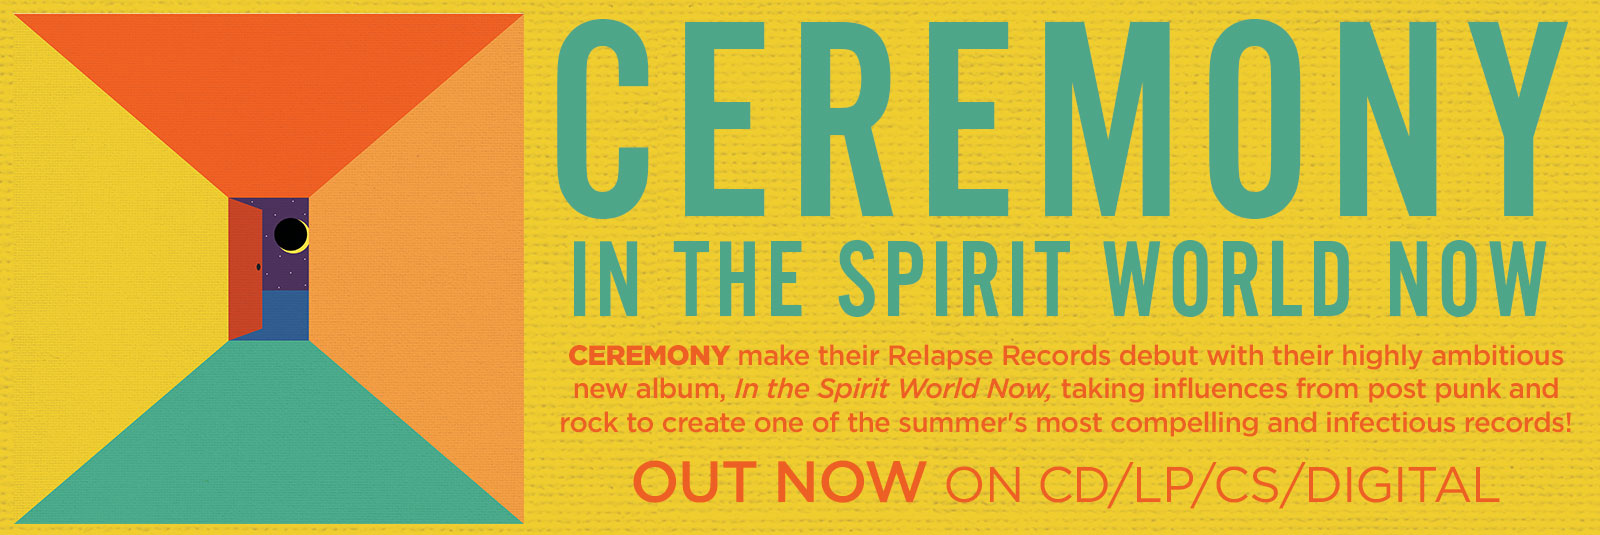 ceremony-in-the-spirit-world-now-indie-rock-post-punk-out-now